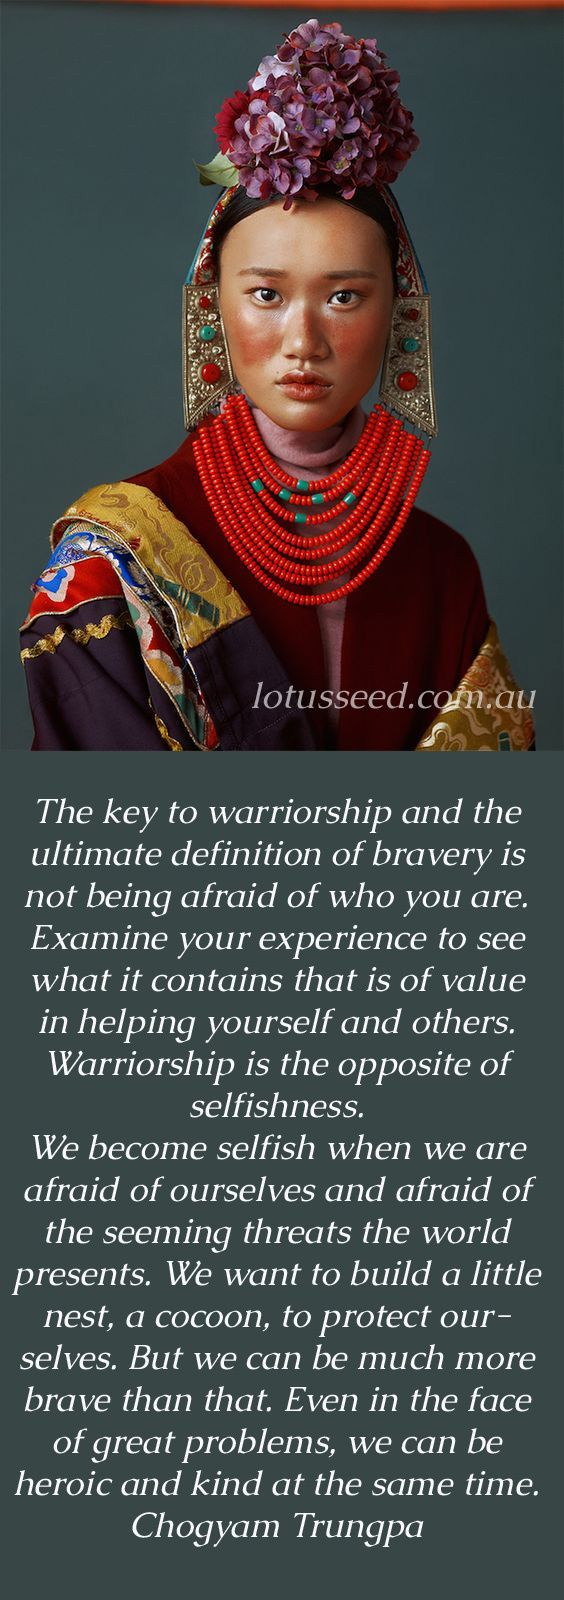 The key to warriorship and the ultimate definition of bravery is not being afraid of who you are. Examine your experience to see what it contains that is of value in helping yourself and others. Warriorship is the opposite of selfishness.  We become selfish when we are afraid of ourselves and afraid of the seeming threats the world presents. We want to build a little nest, a cocoon, to protect ourselves. But we can be much more brave than that. Even in the face of great problems, we can be…